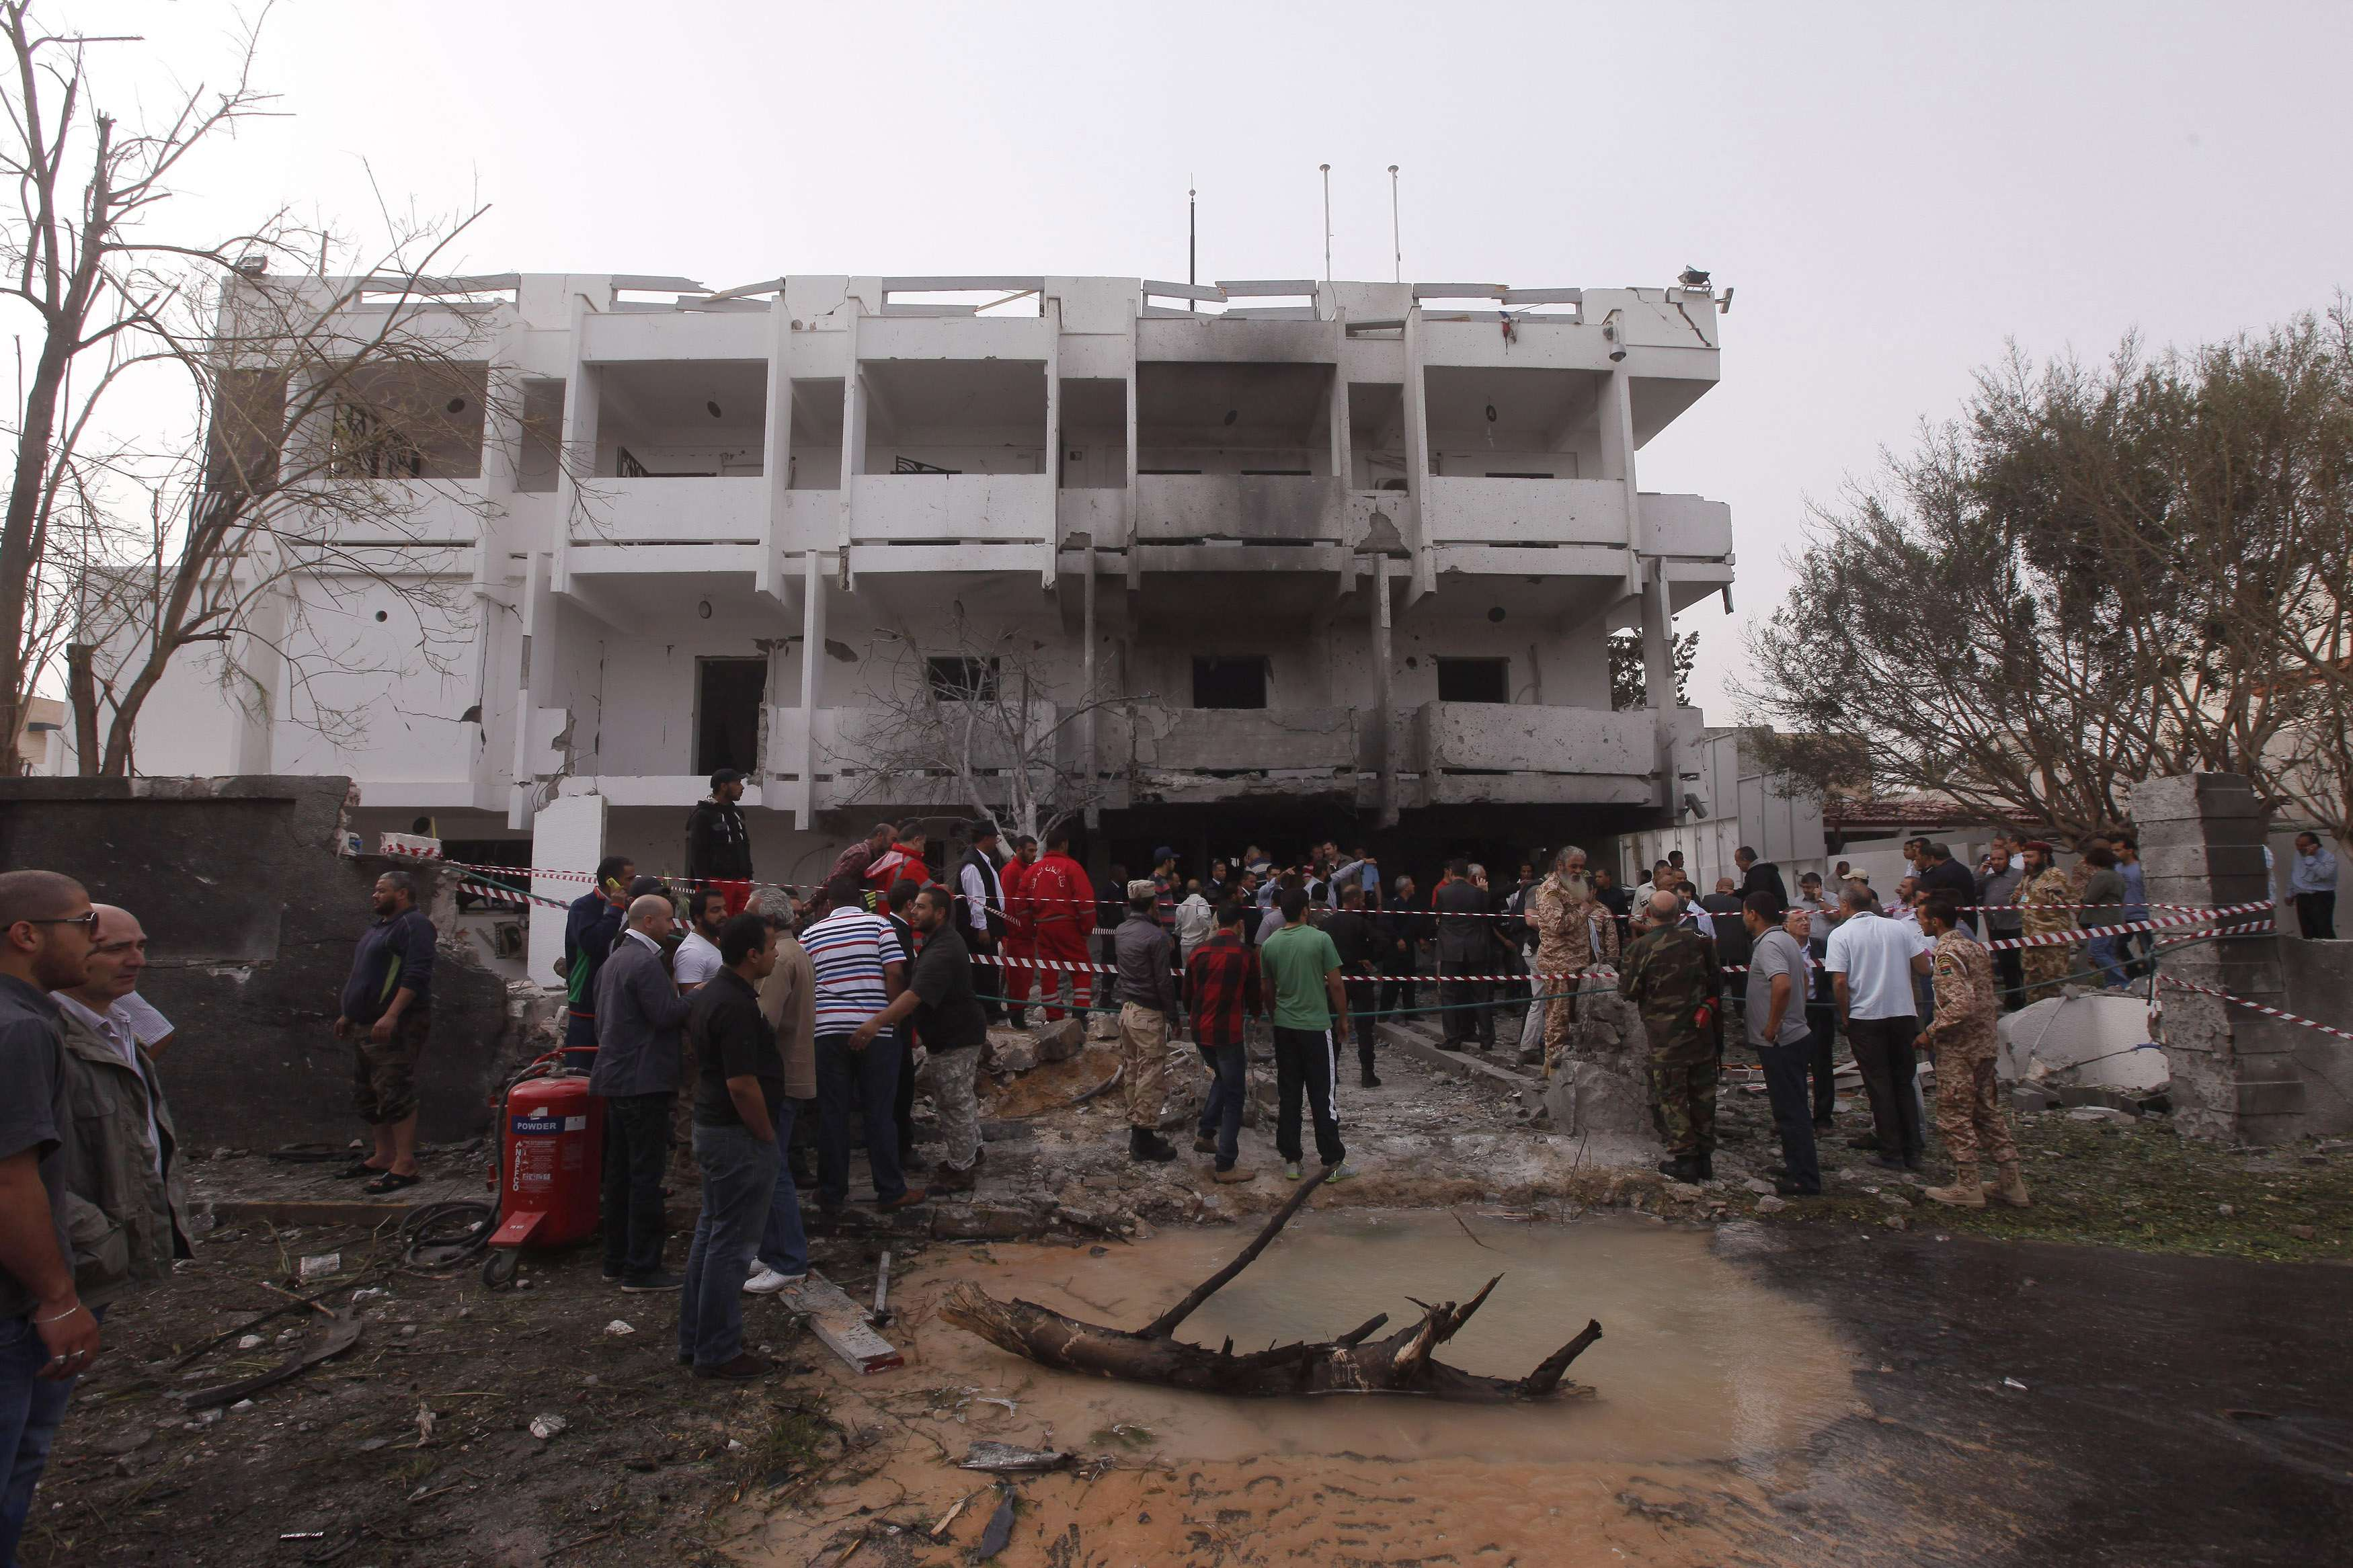 People stand among debris outside the French embassy after the building was attacked, in Tripoli